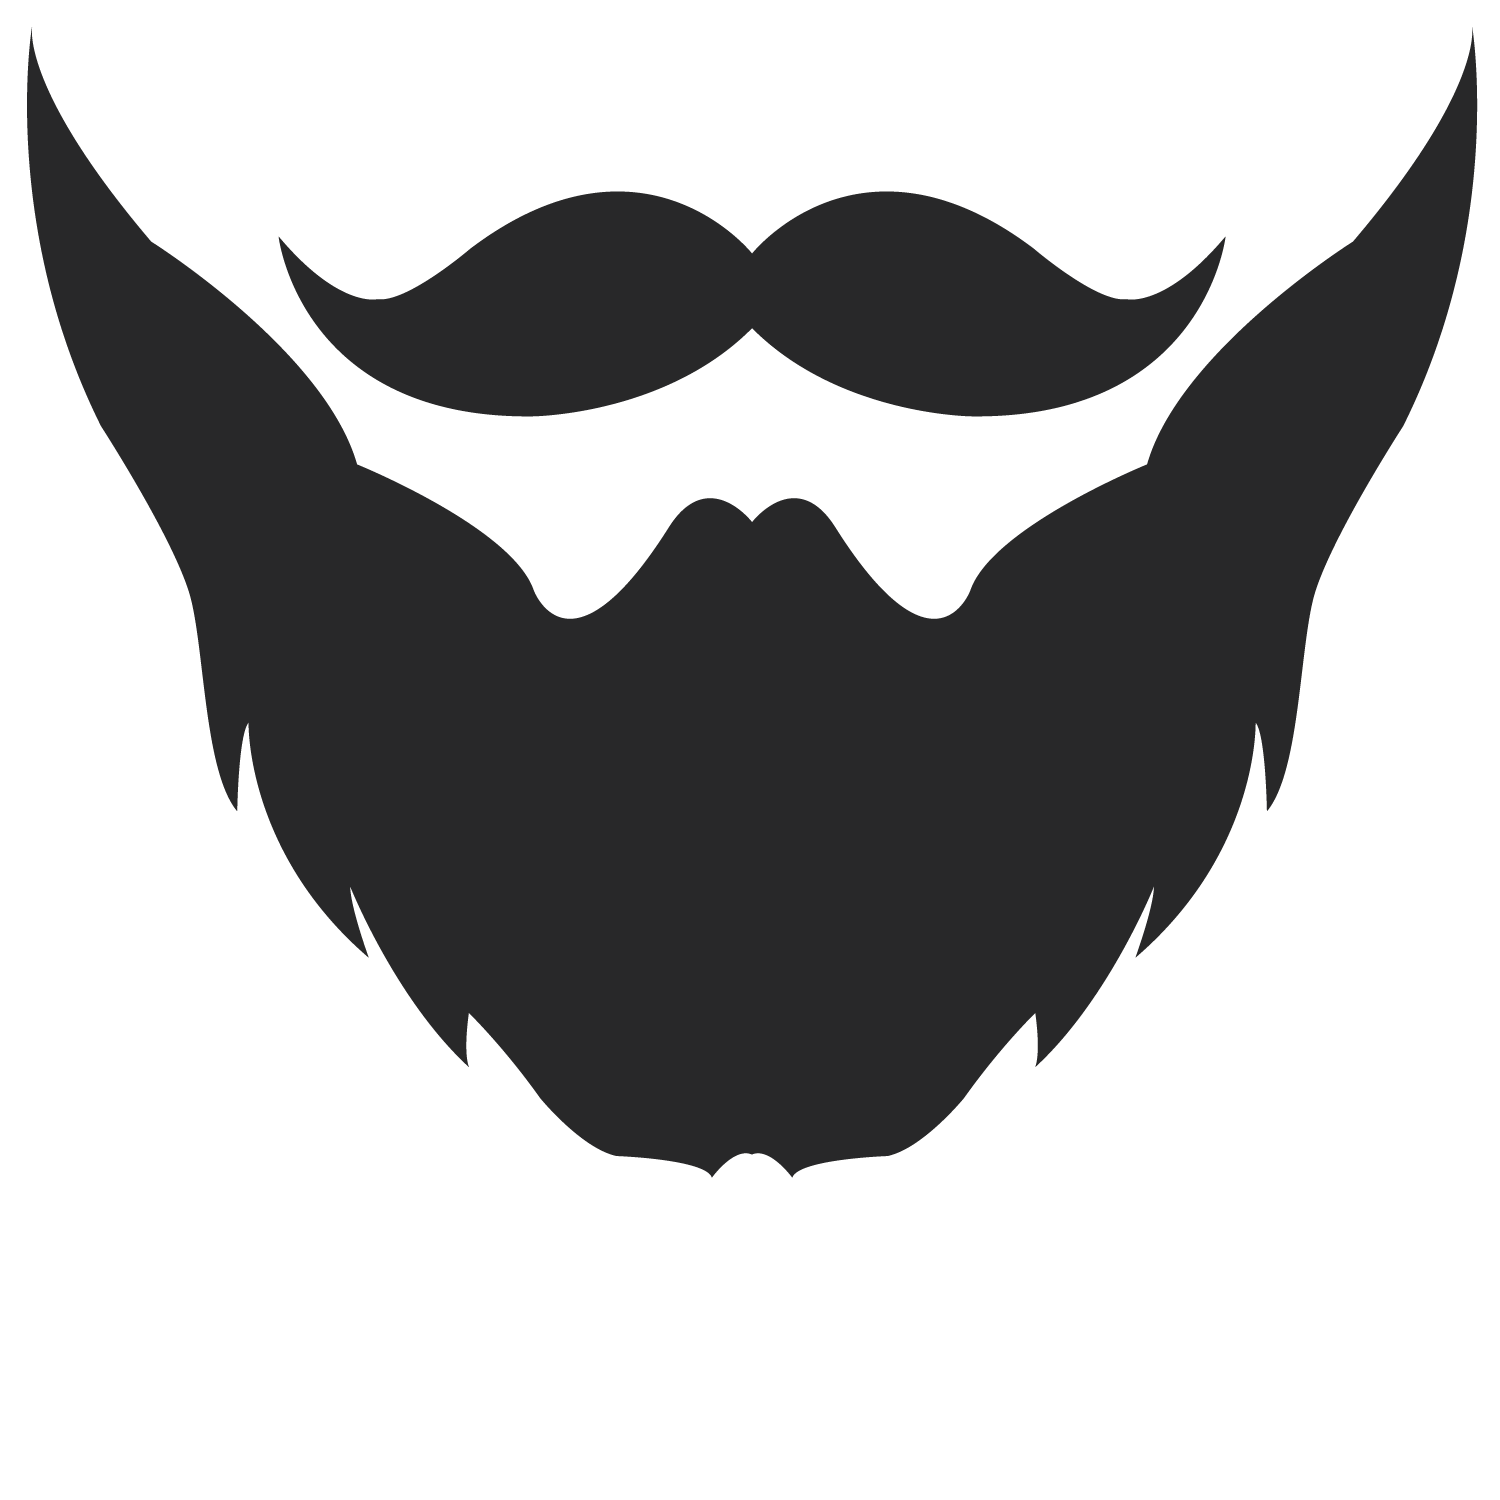 Beard silhouette png. Logo google search pinterest